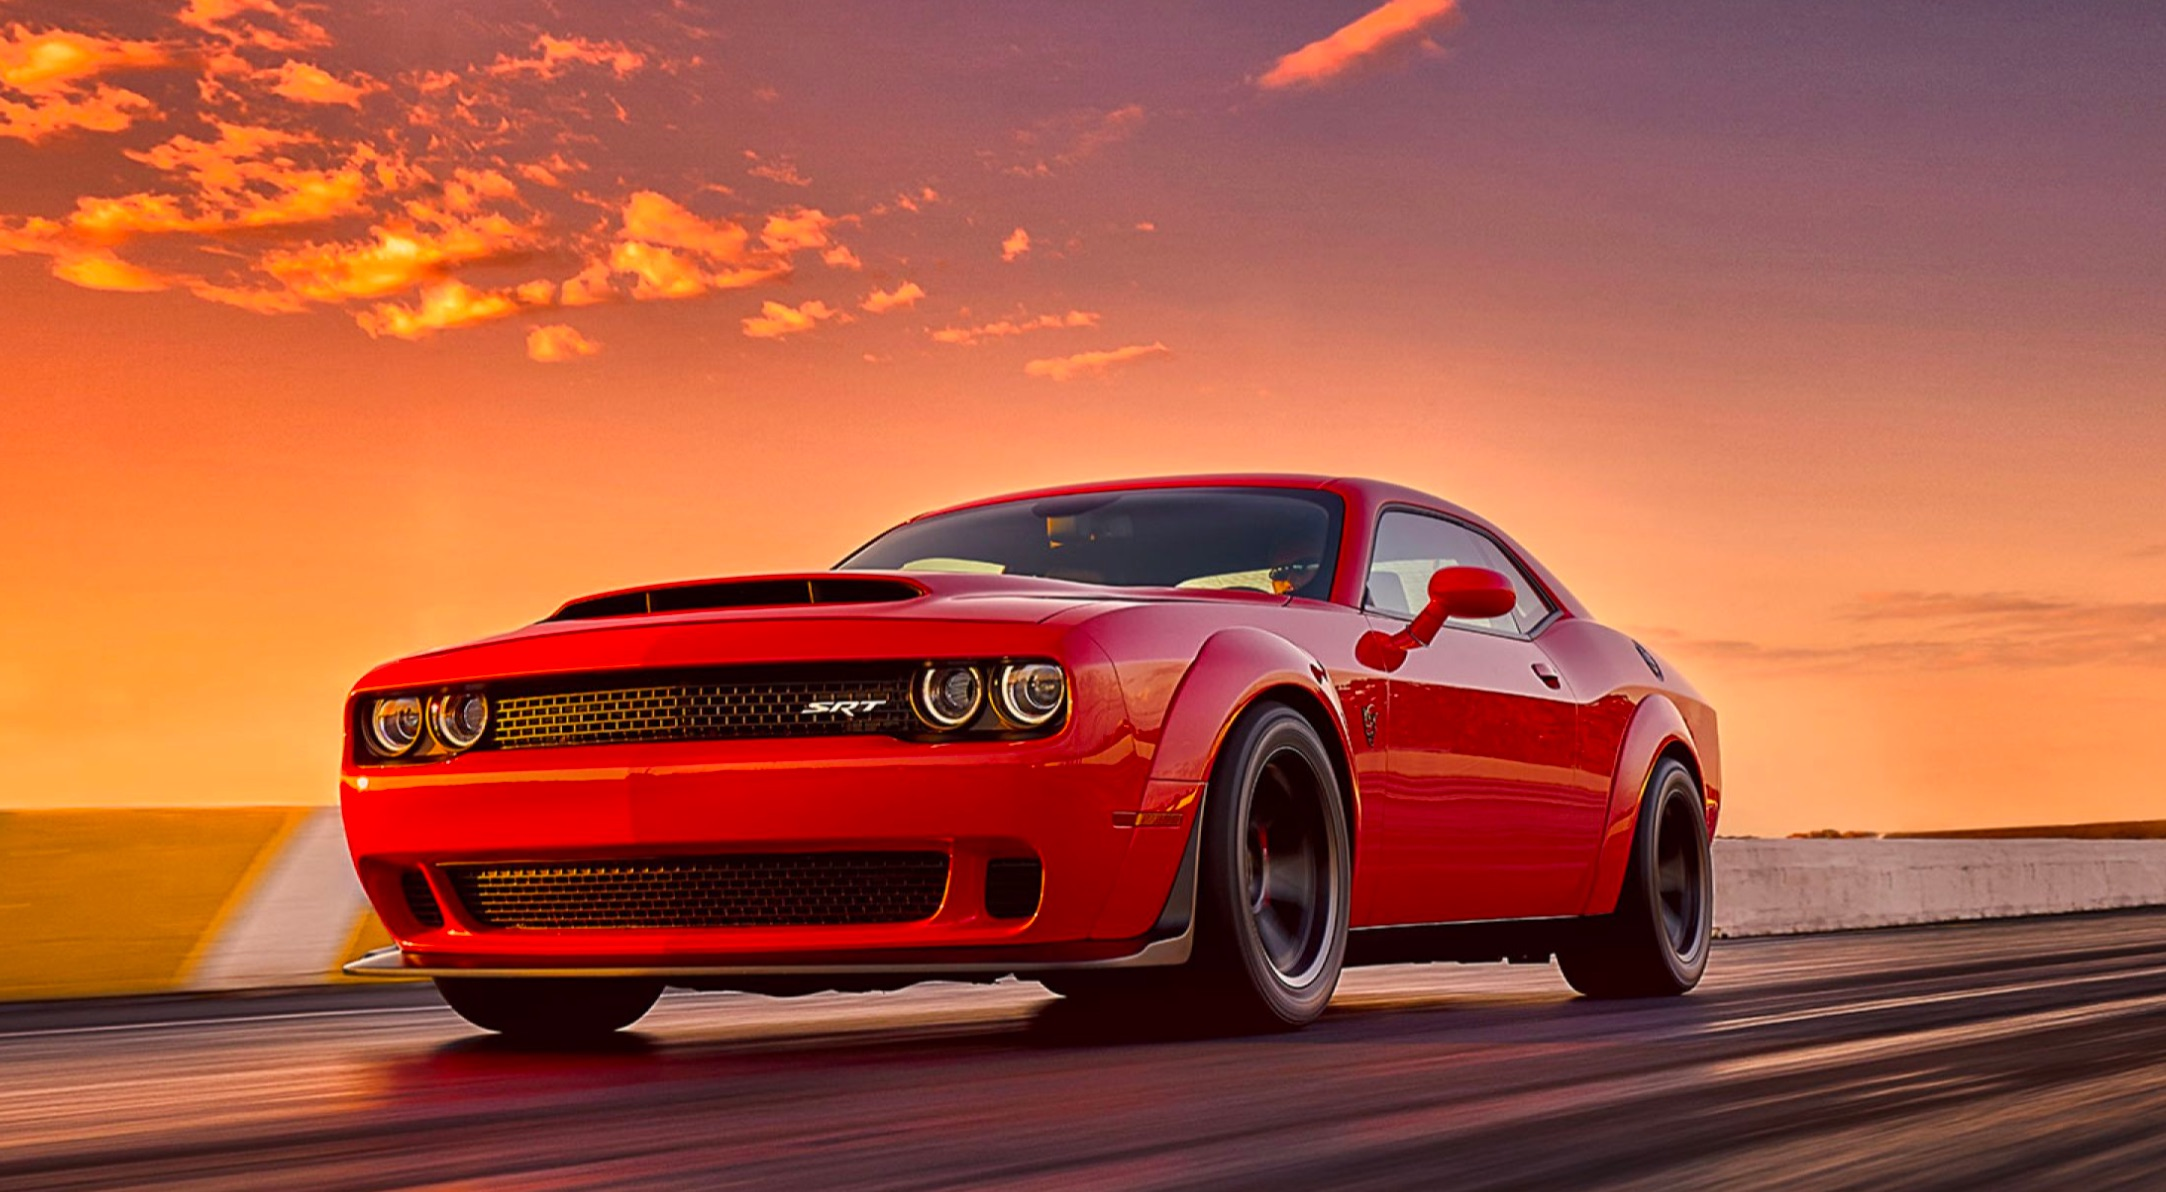 dodge demon looks to dethrone tesla 39 s title for quickest production car in the world. Black Bedroom Furniture Sets. Home Design Ideas